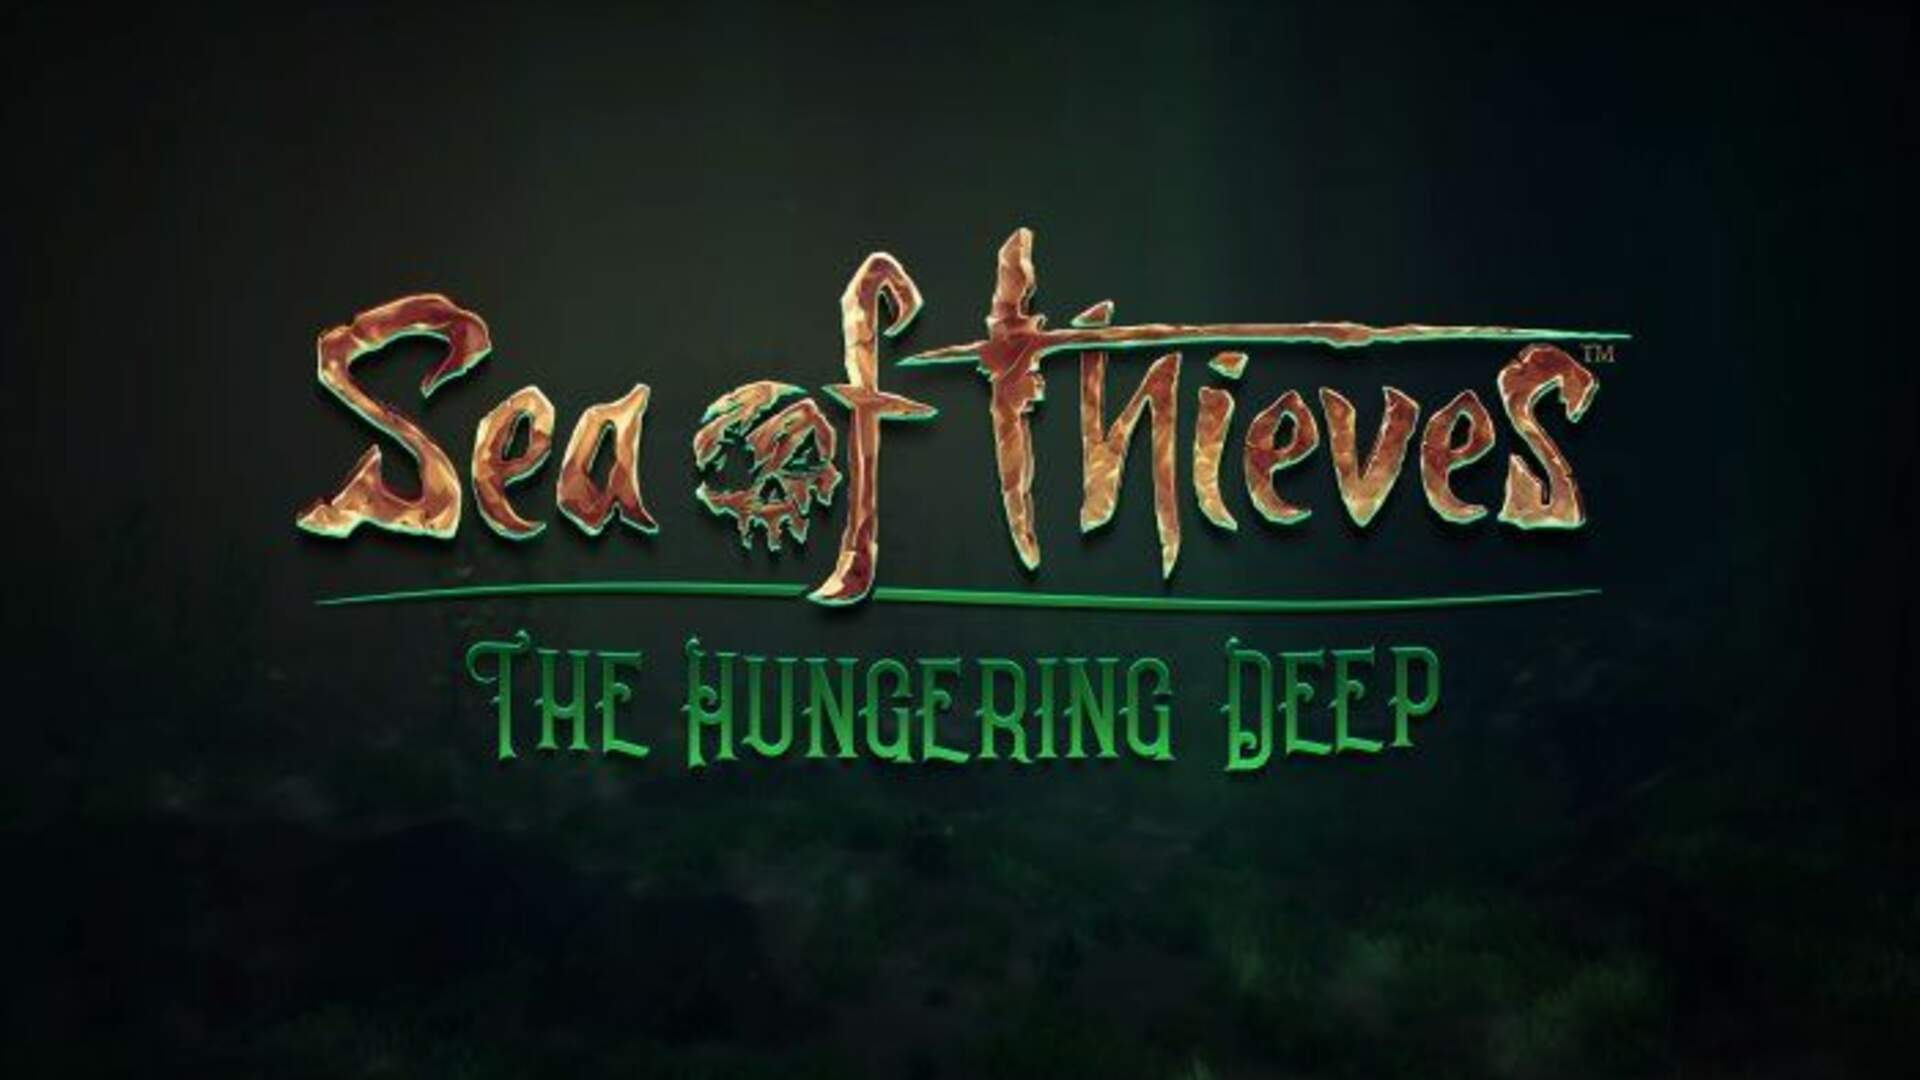 Sea of Thieves Hungering Deep Guide - New Cosmetics, How to Find Merrick, How to Unlock the Speaking Trumpet